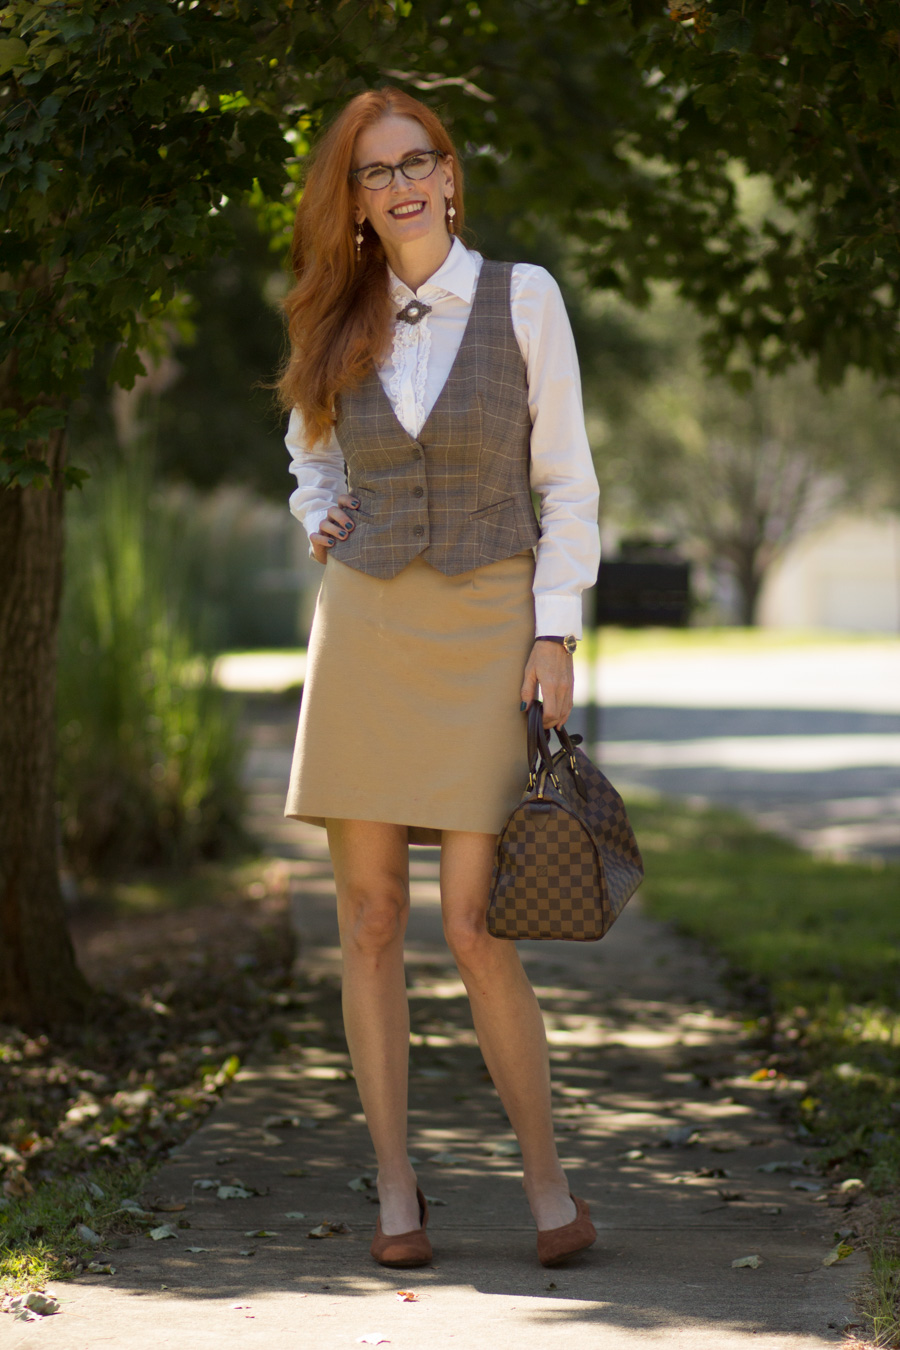 Turning Heads Linkup- A Menswear-Inspired Structured Look